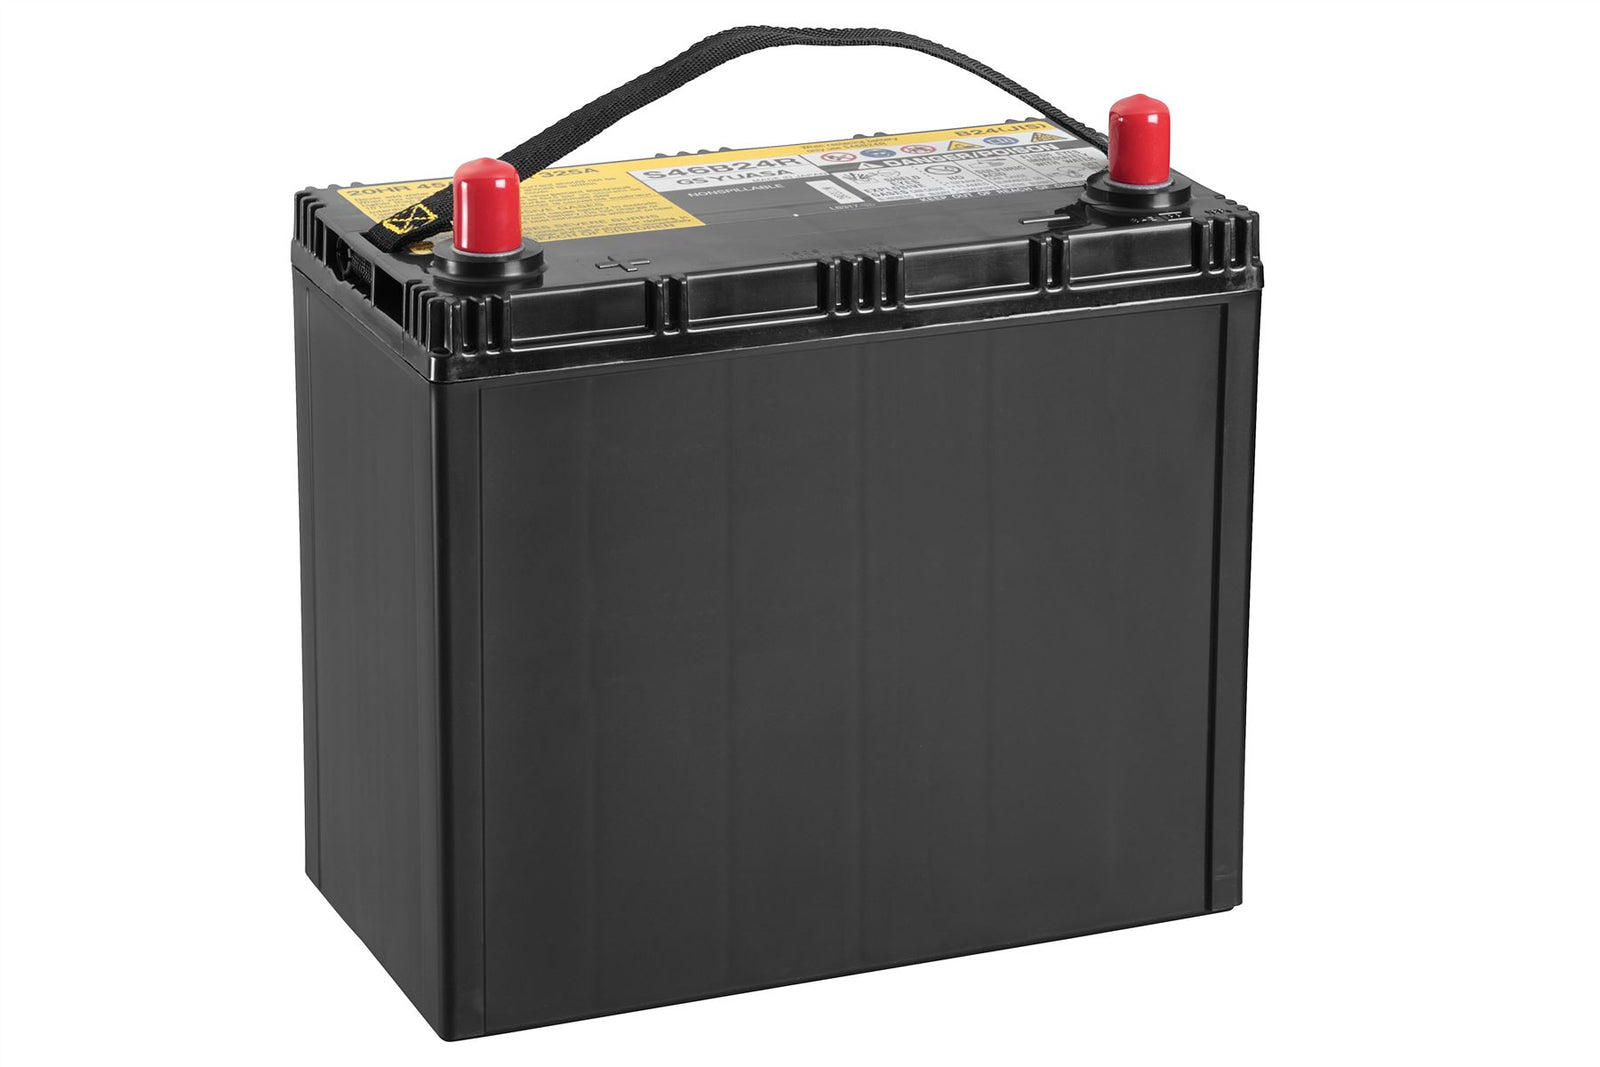 Yuasa HJ-S46B24R Auxilliary, Backup & Specialist Battery